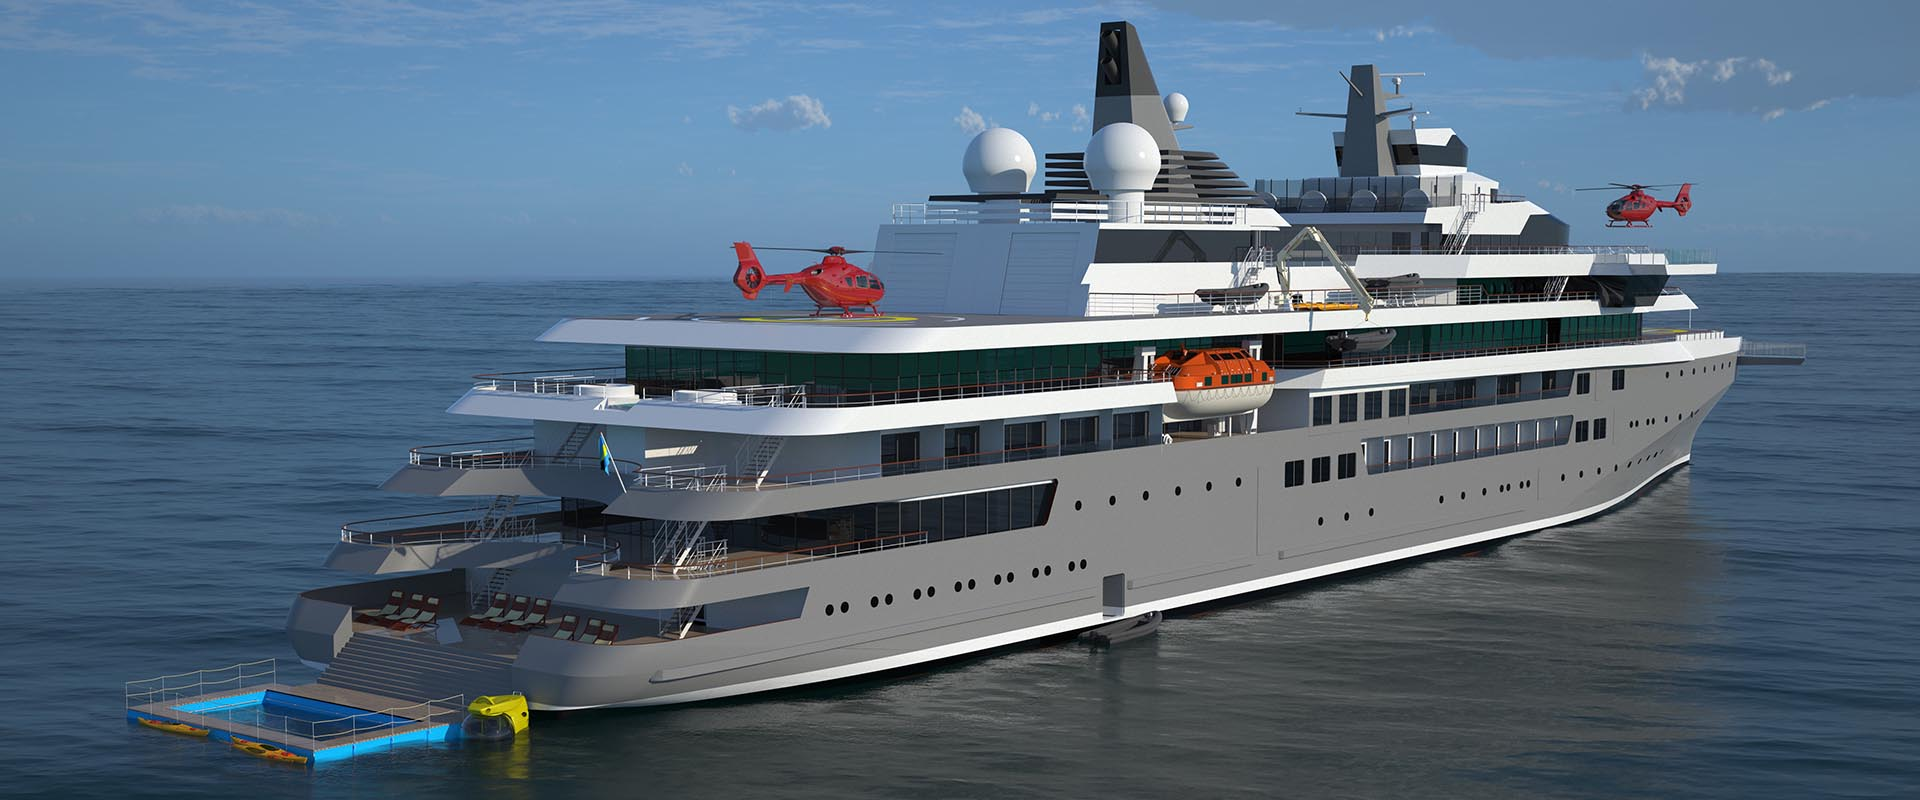 Passengers will take in the views on multiple viewing platforms that extend over the side or past the bow